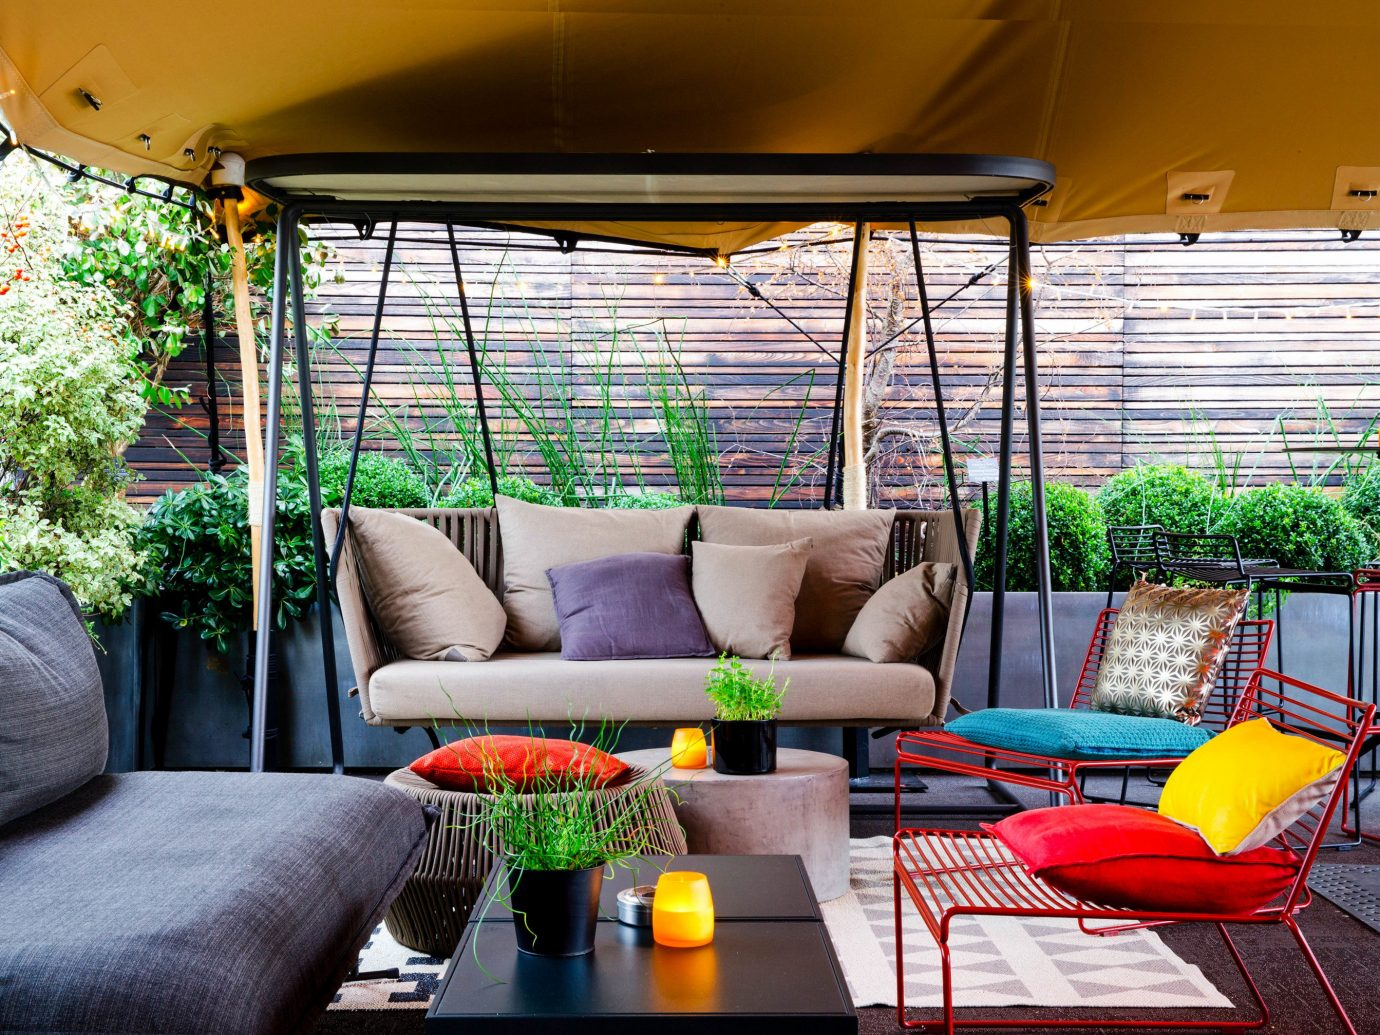 Food + Drink Paris Trip Ideas Living indoor room building home interior design living room outdoor structure Patio house real estate Balcony porch window table furniture backyard colorful decorated colored